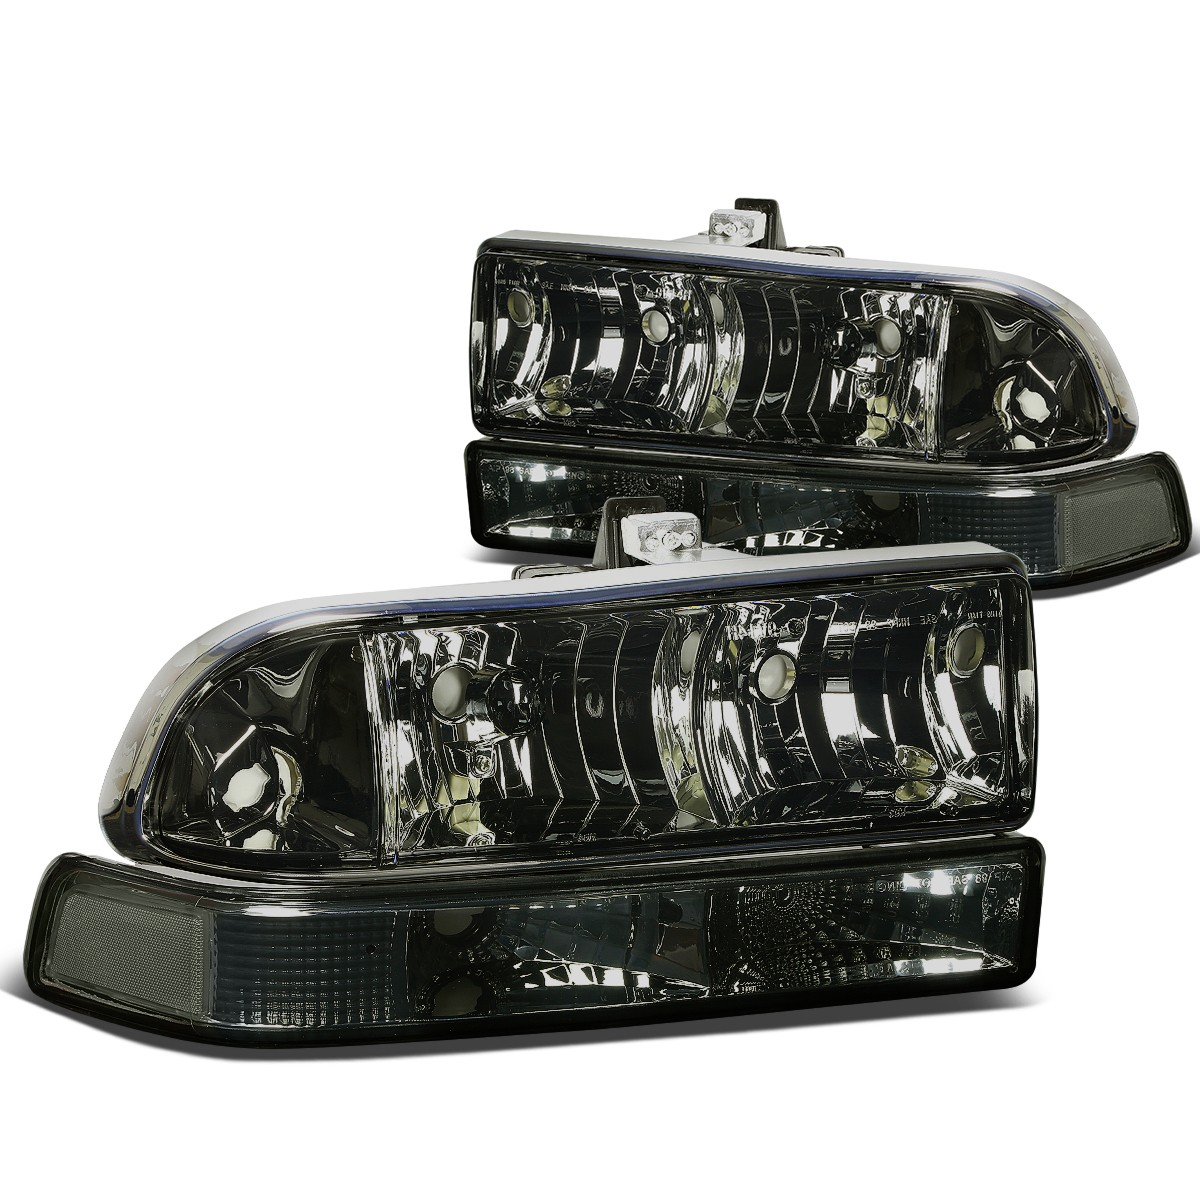 For 98 04 Chevy S10 Blazer GMT 325 330 Replacement HeadLight Assembly Kit